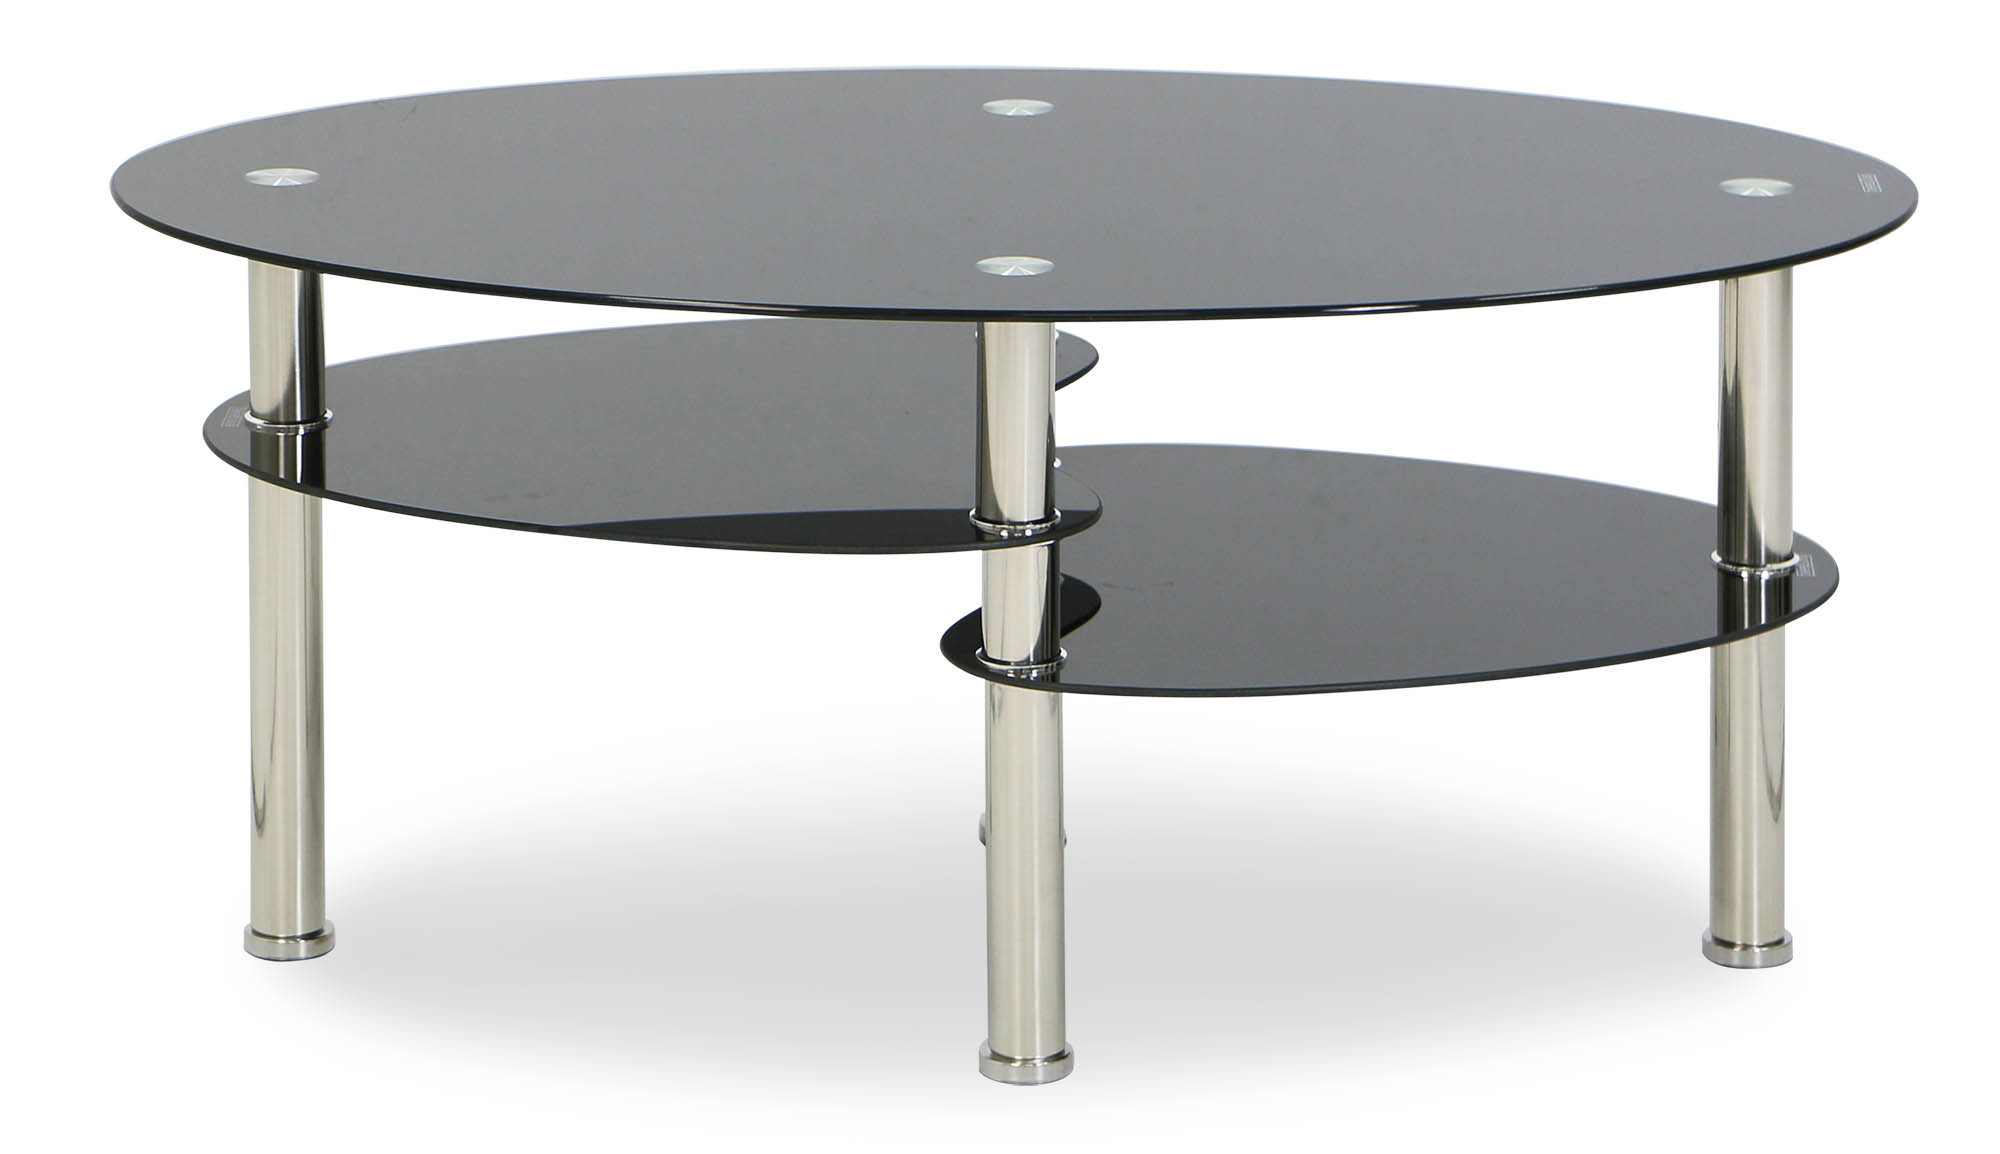 Krystal eclipse black tempered glass coffee table for Tempered glass coffee table